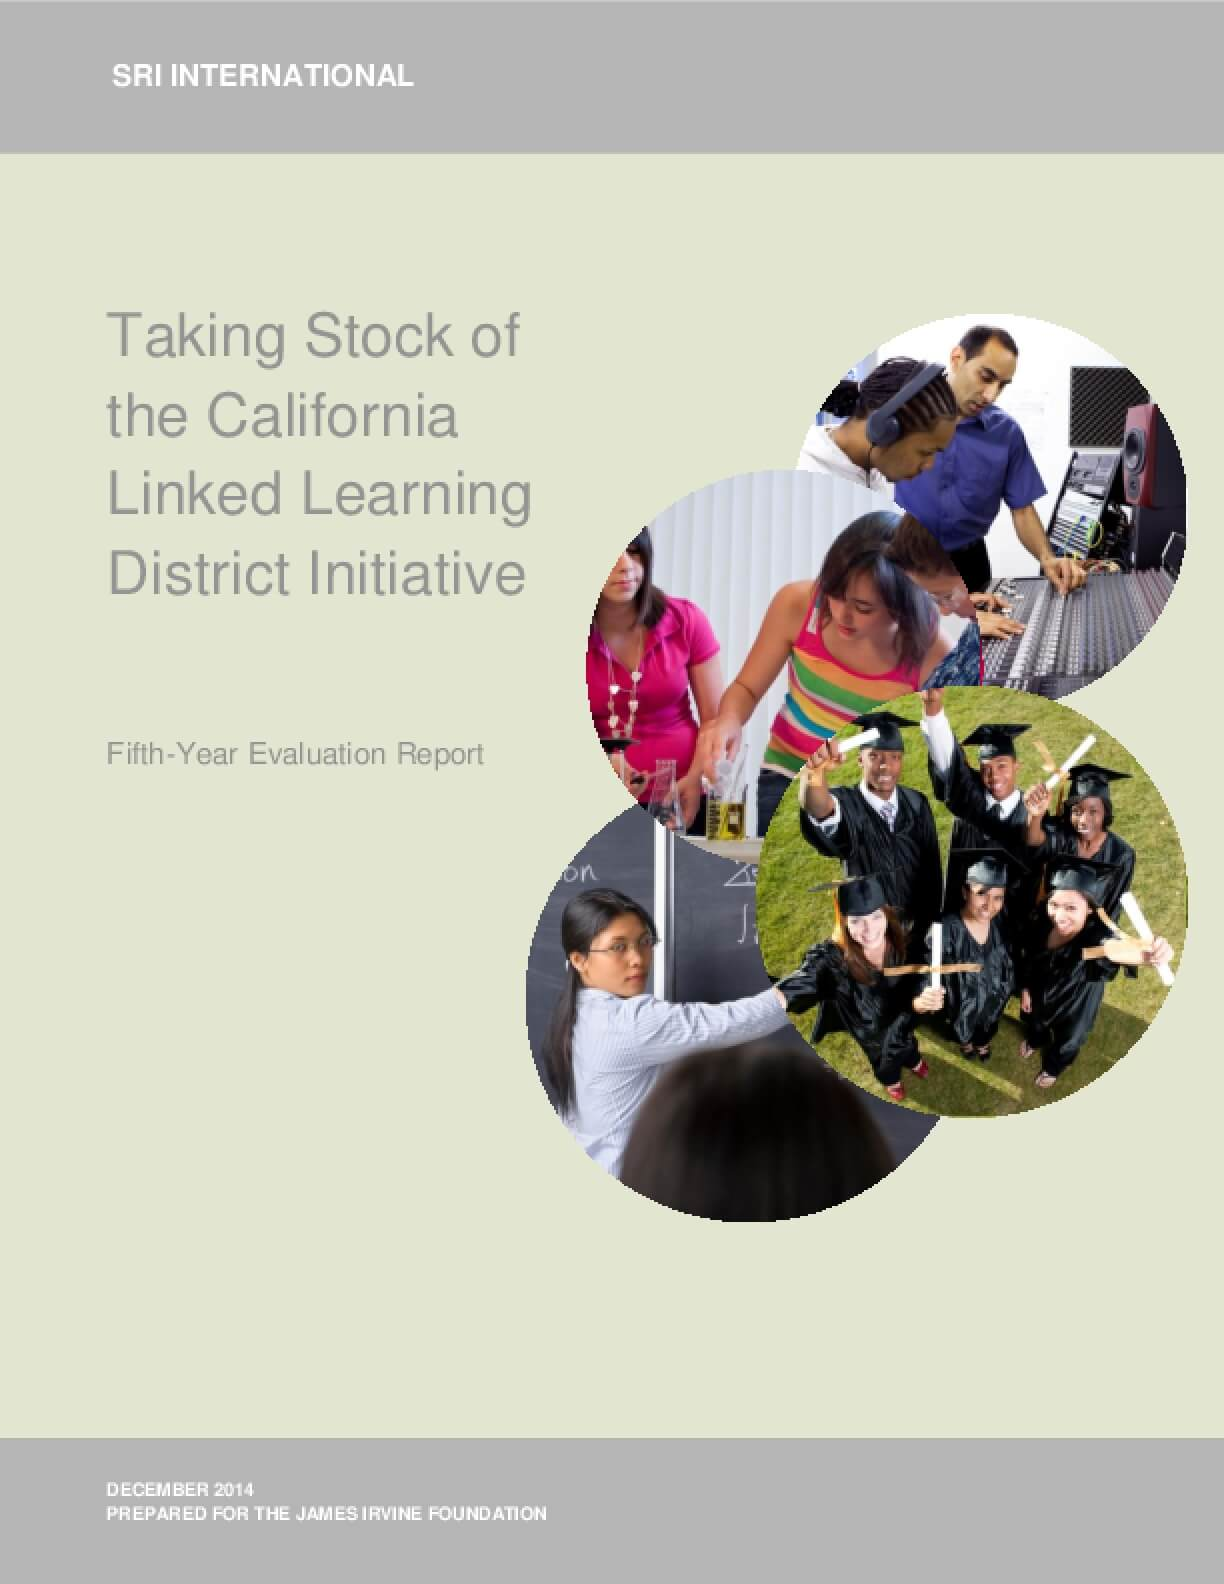 Taking Stock of the California Linked Learning District Initiative, Fifth-Year Evaluation Report